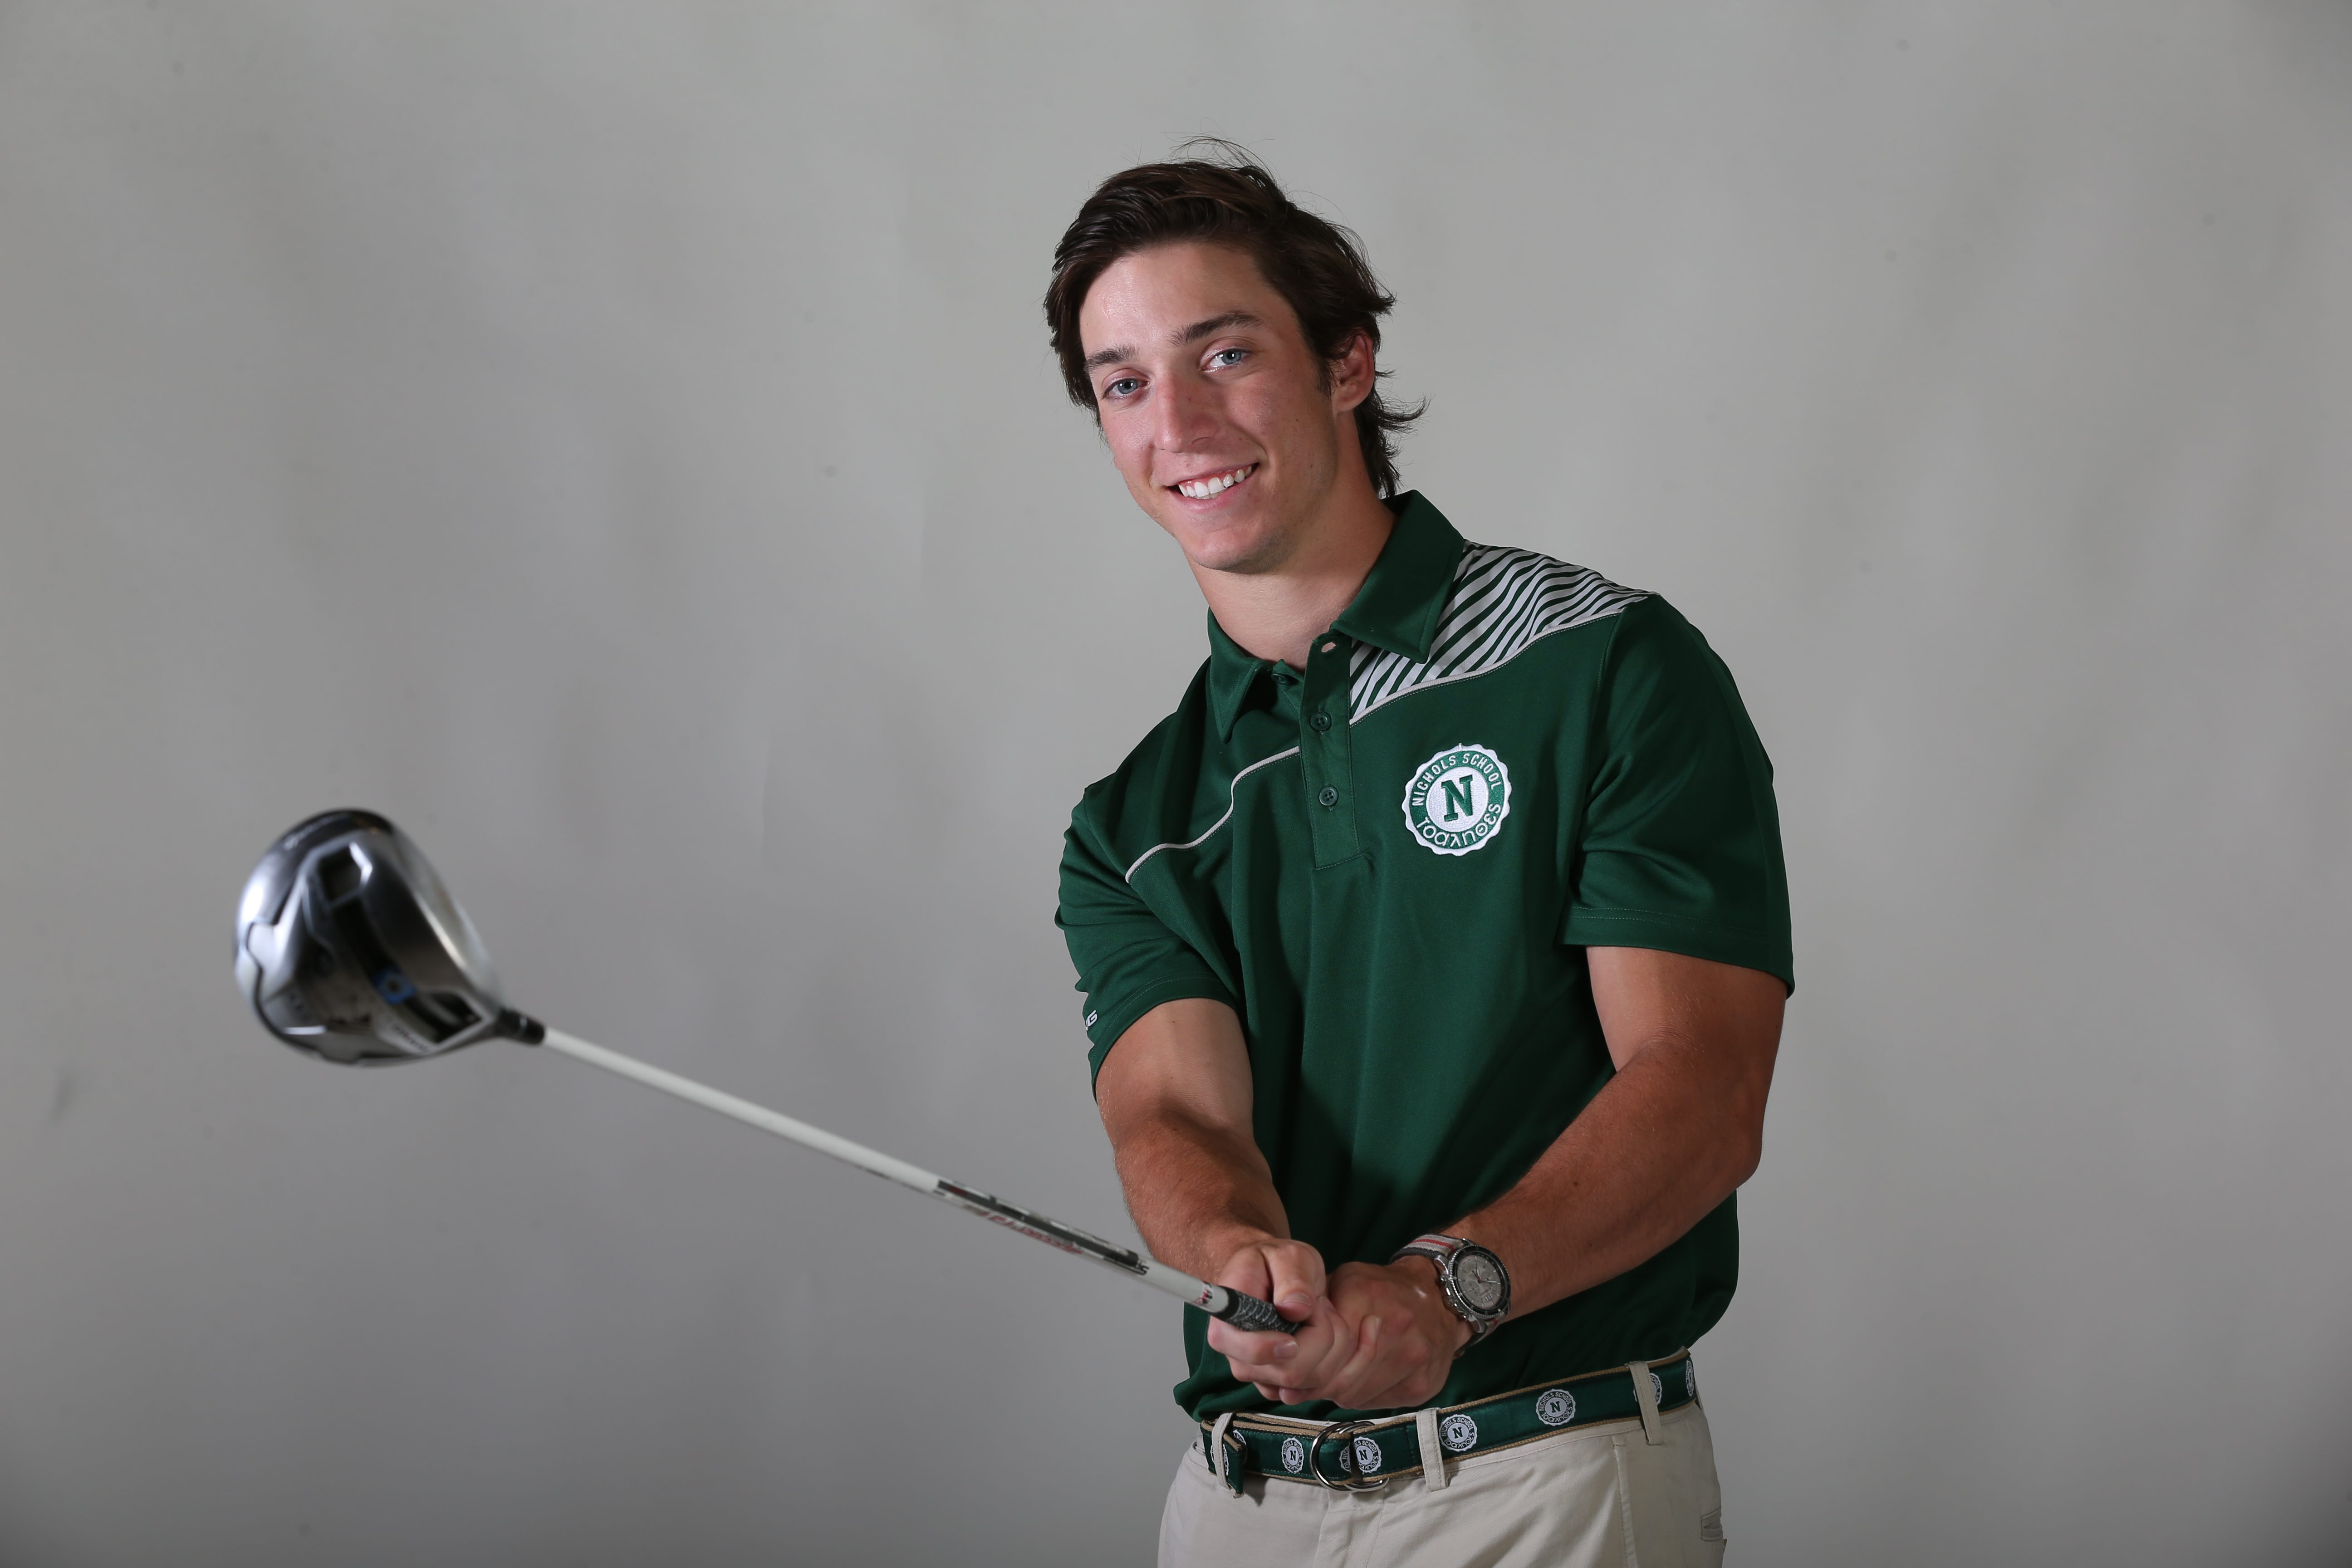 Prep Talk Player of the Year for boys golf: Gregory Sibick of Nichols. (James P. McCoy/Buffalo News)